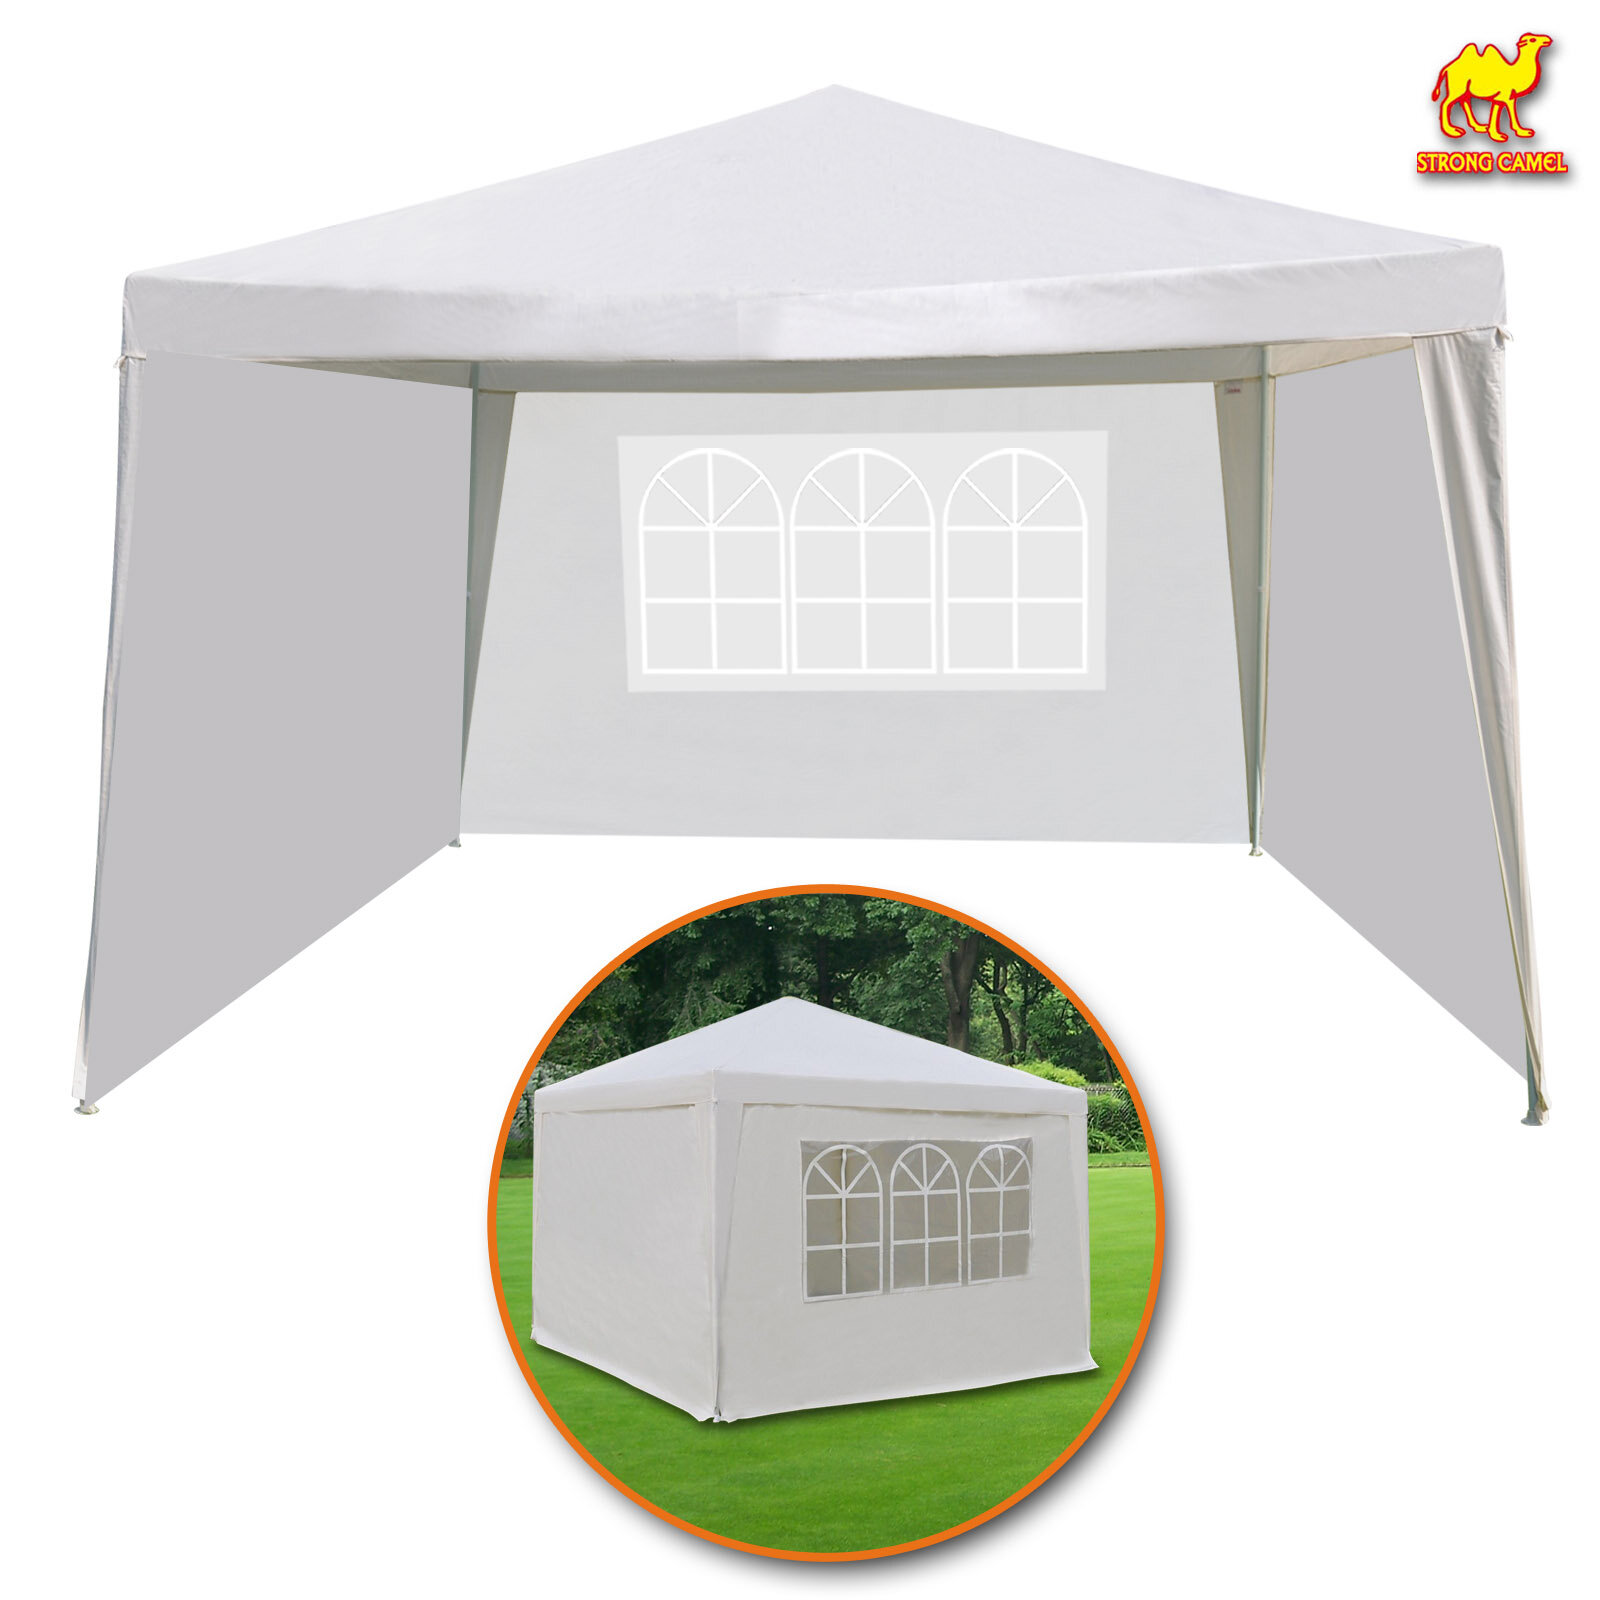 outdoor marquee canopy metal light bag system tent x gazebo uk with garden water lighting party resistant mesh sidewalls up free storage amazon outsunny pop co led w pin instant coleman